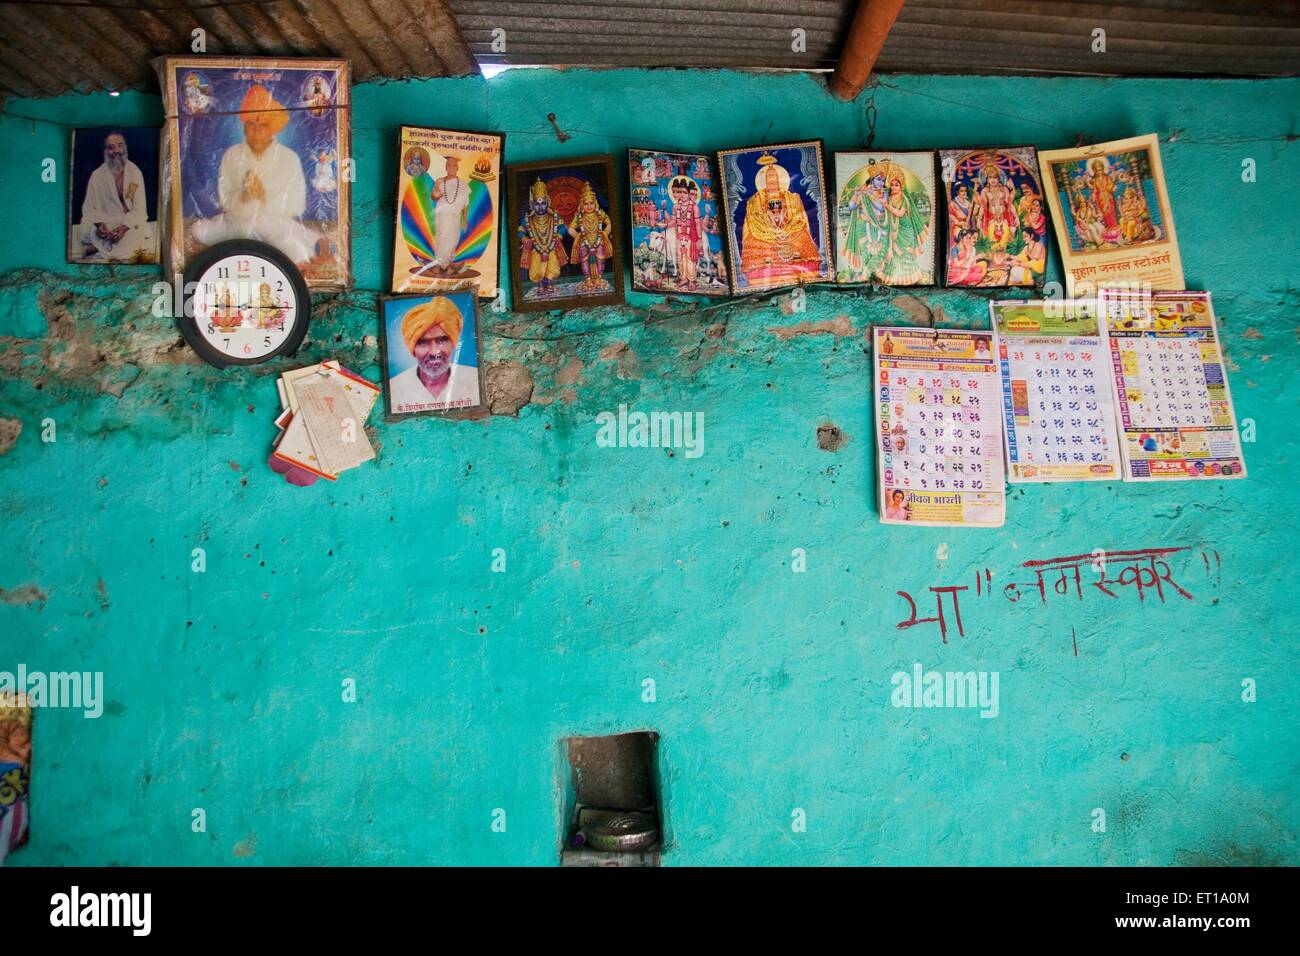 Photographs of gods on wall in house ; Nandur ; Marathwada ; Maharashtra ; India - Stock Image